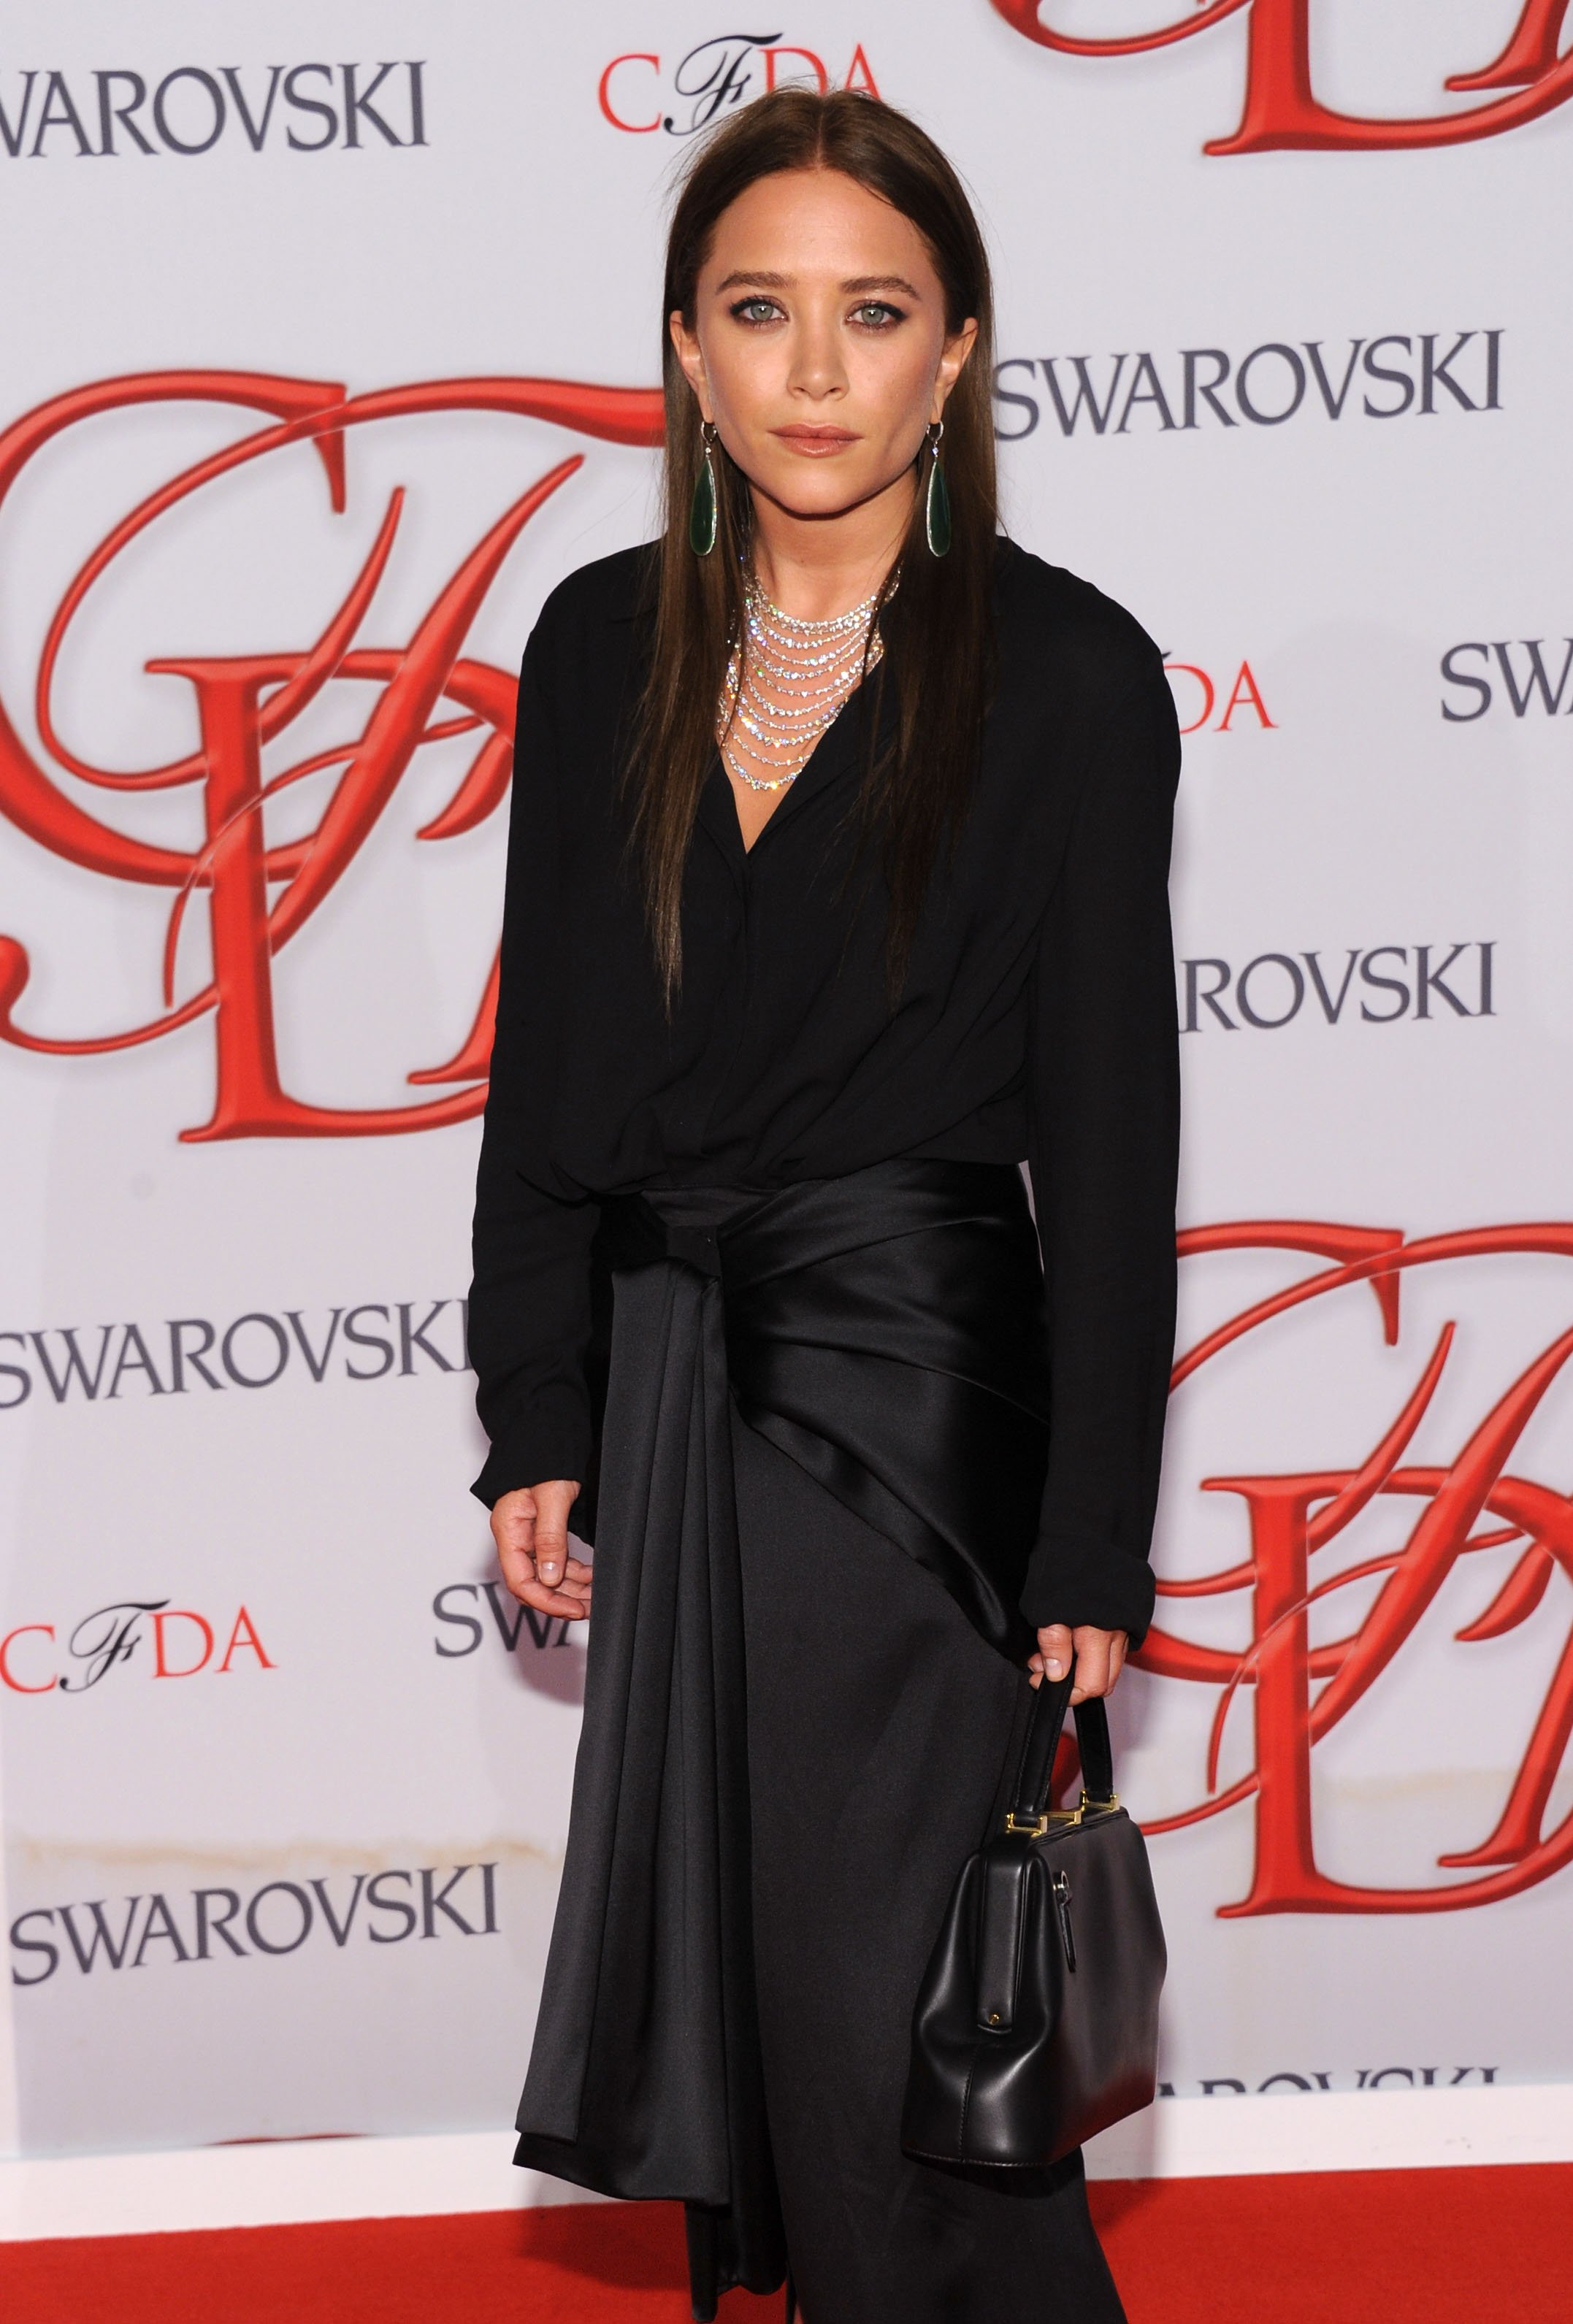 Mary Kate Olsen attends the 2012 CFDA Fashion Awards at Alice Tully Hall on June 4, 2012 in New York City | Photo: Getty Images